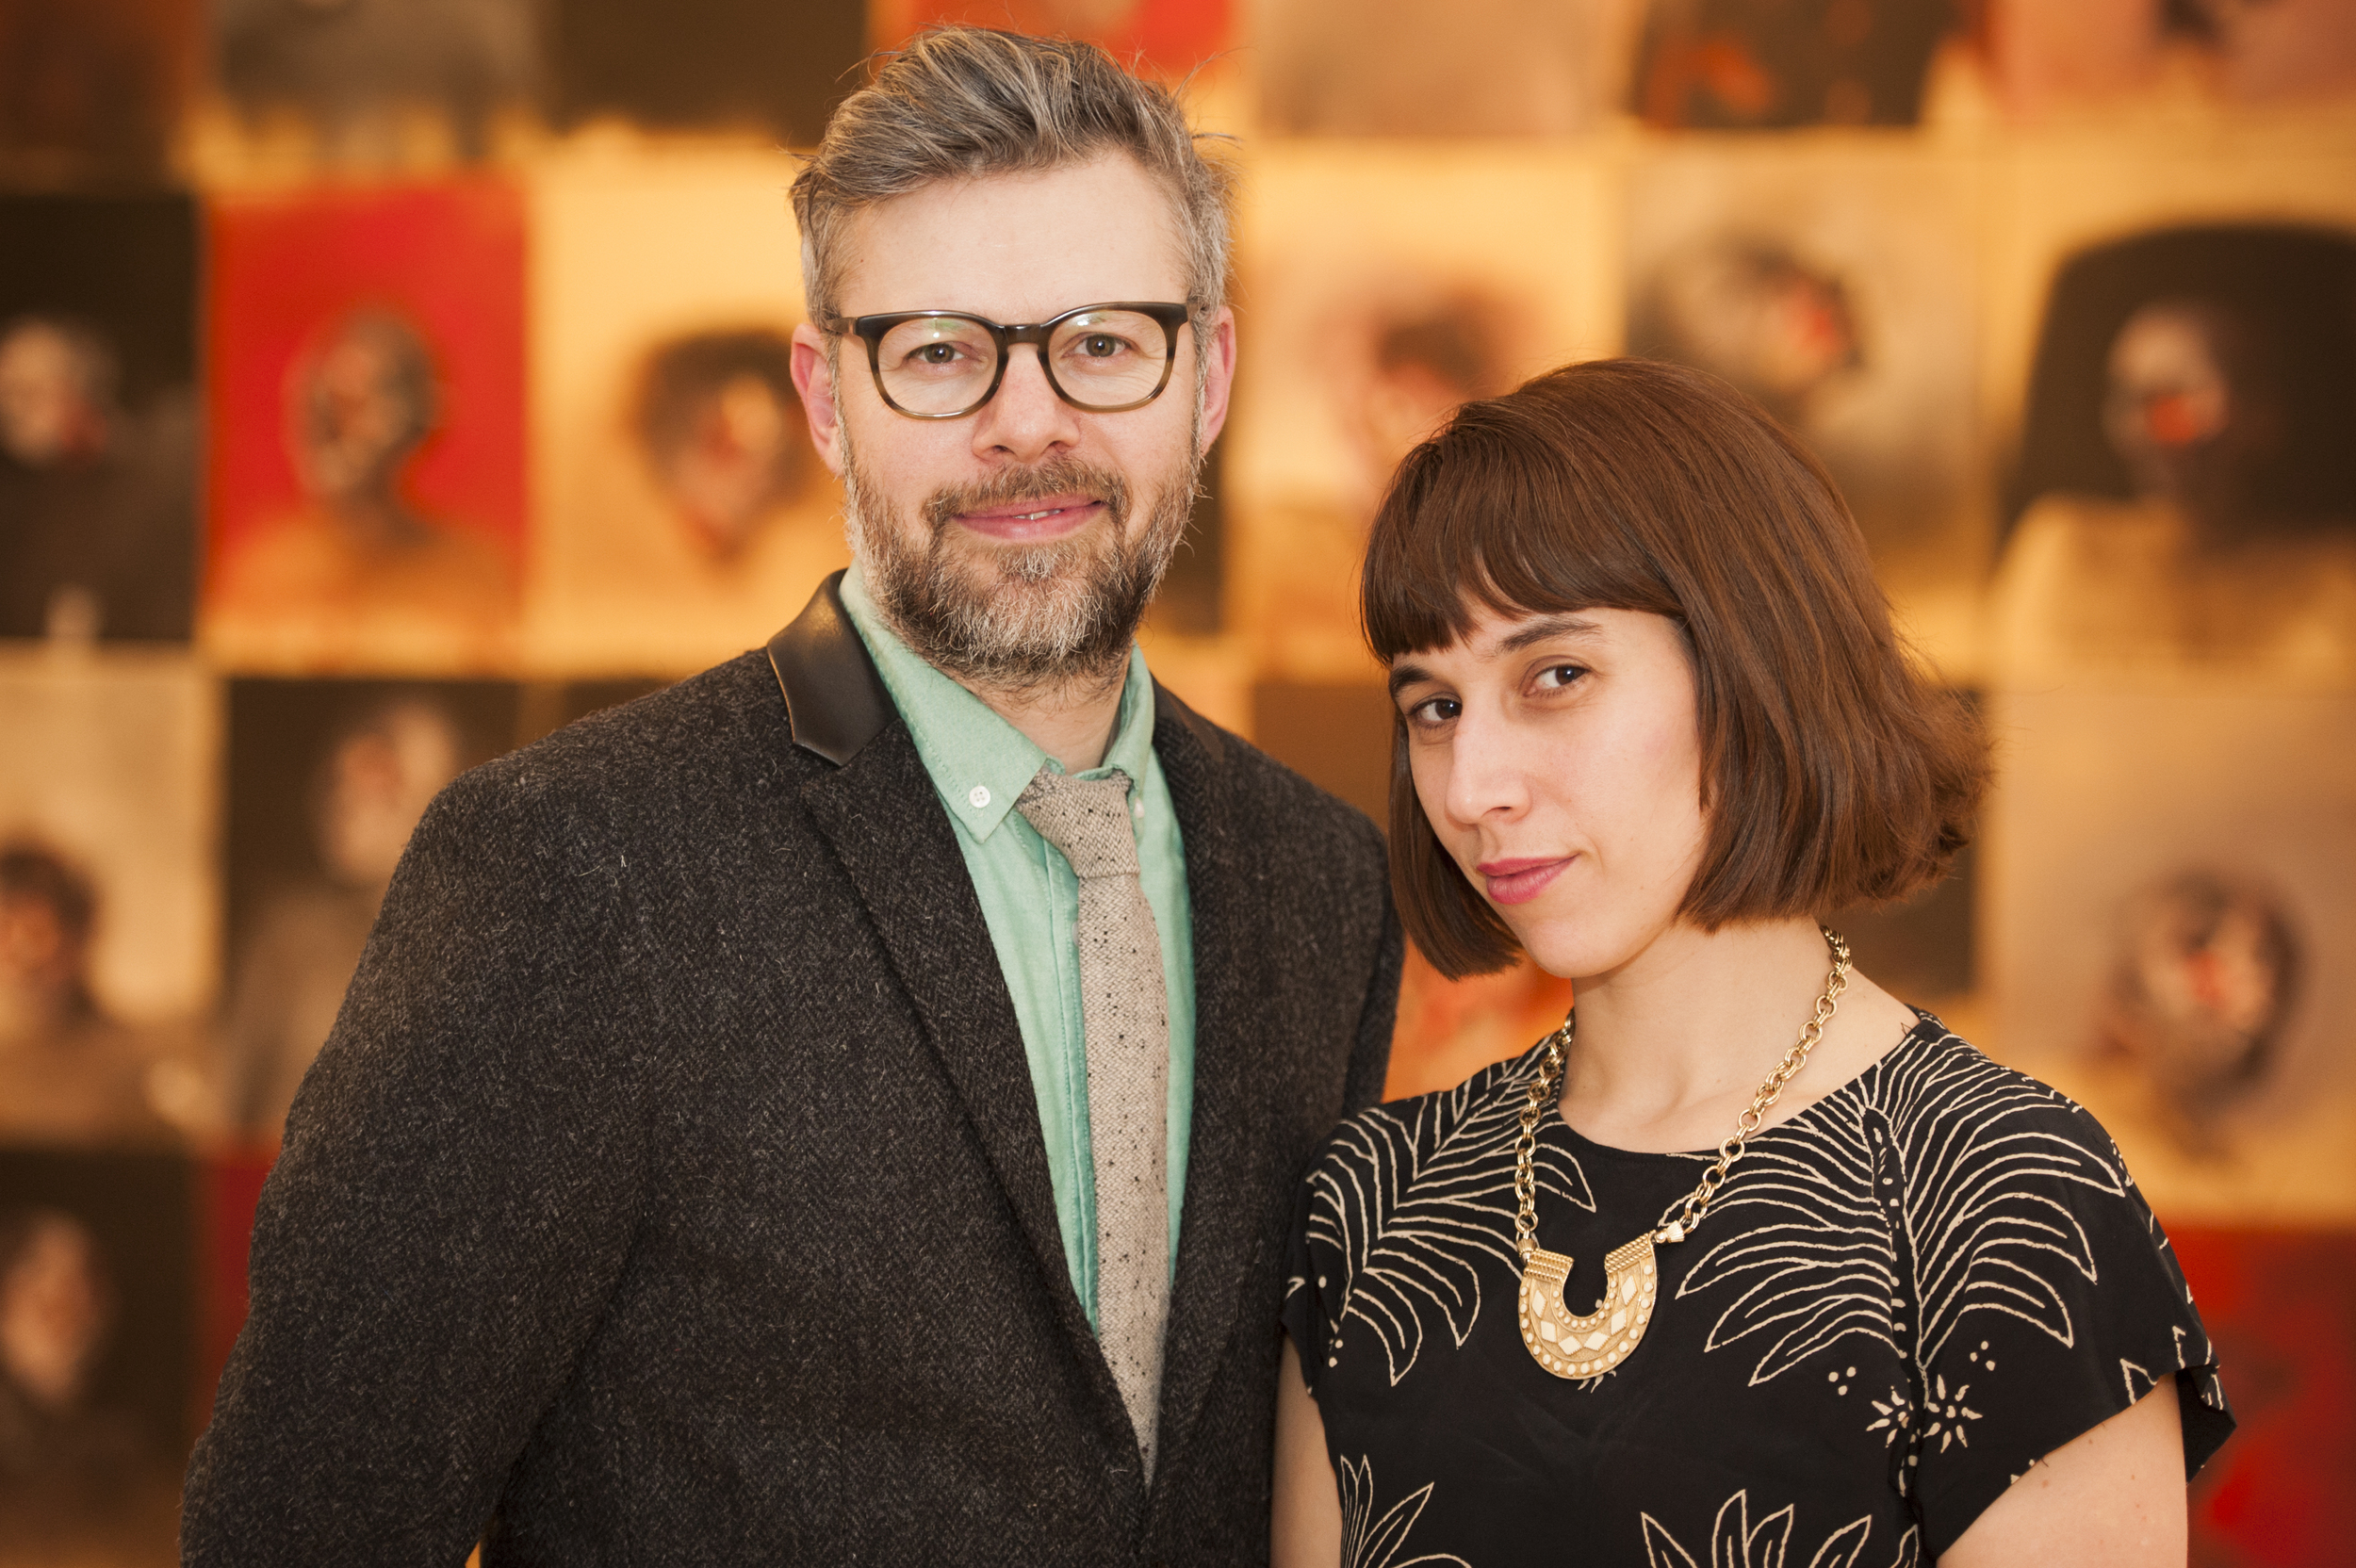 Pascal Desjardins and his partner at  La petite commission,  Roxanne Arsenault.